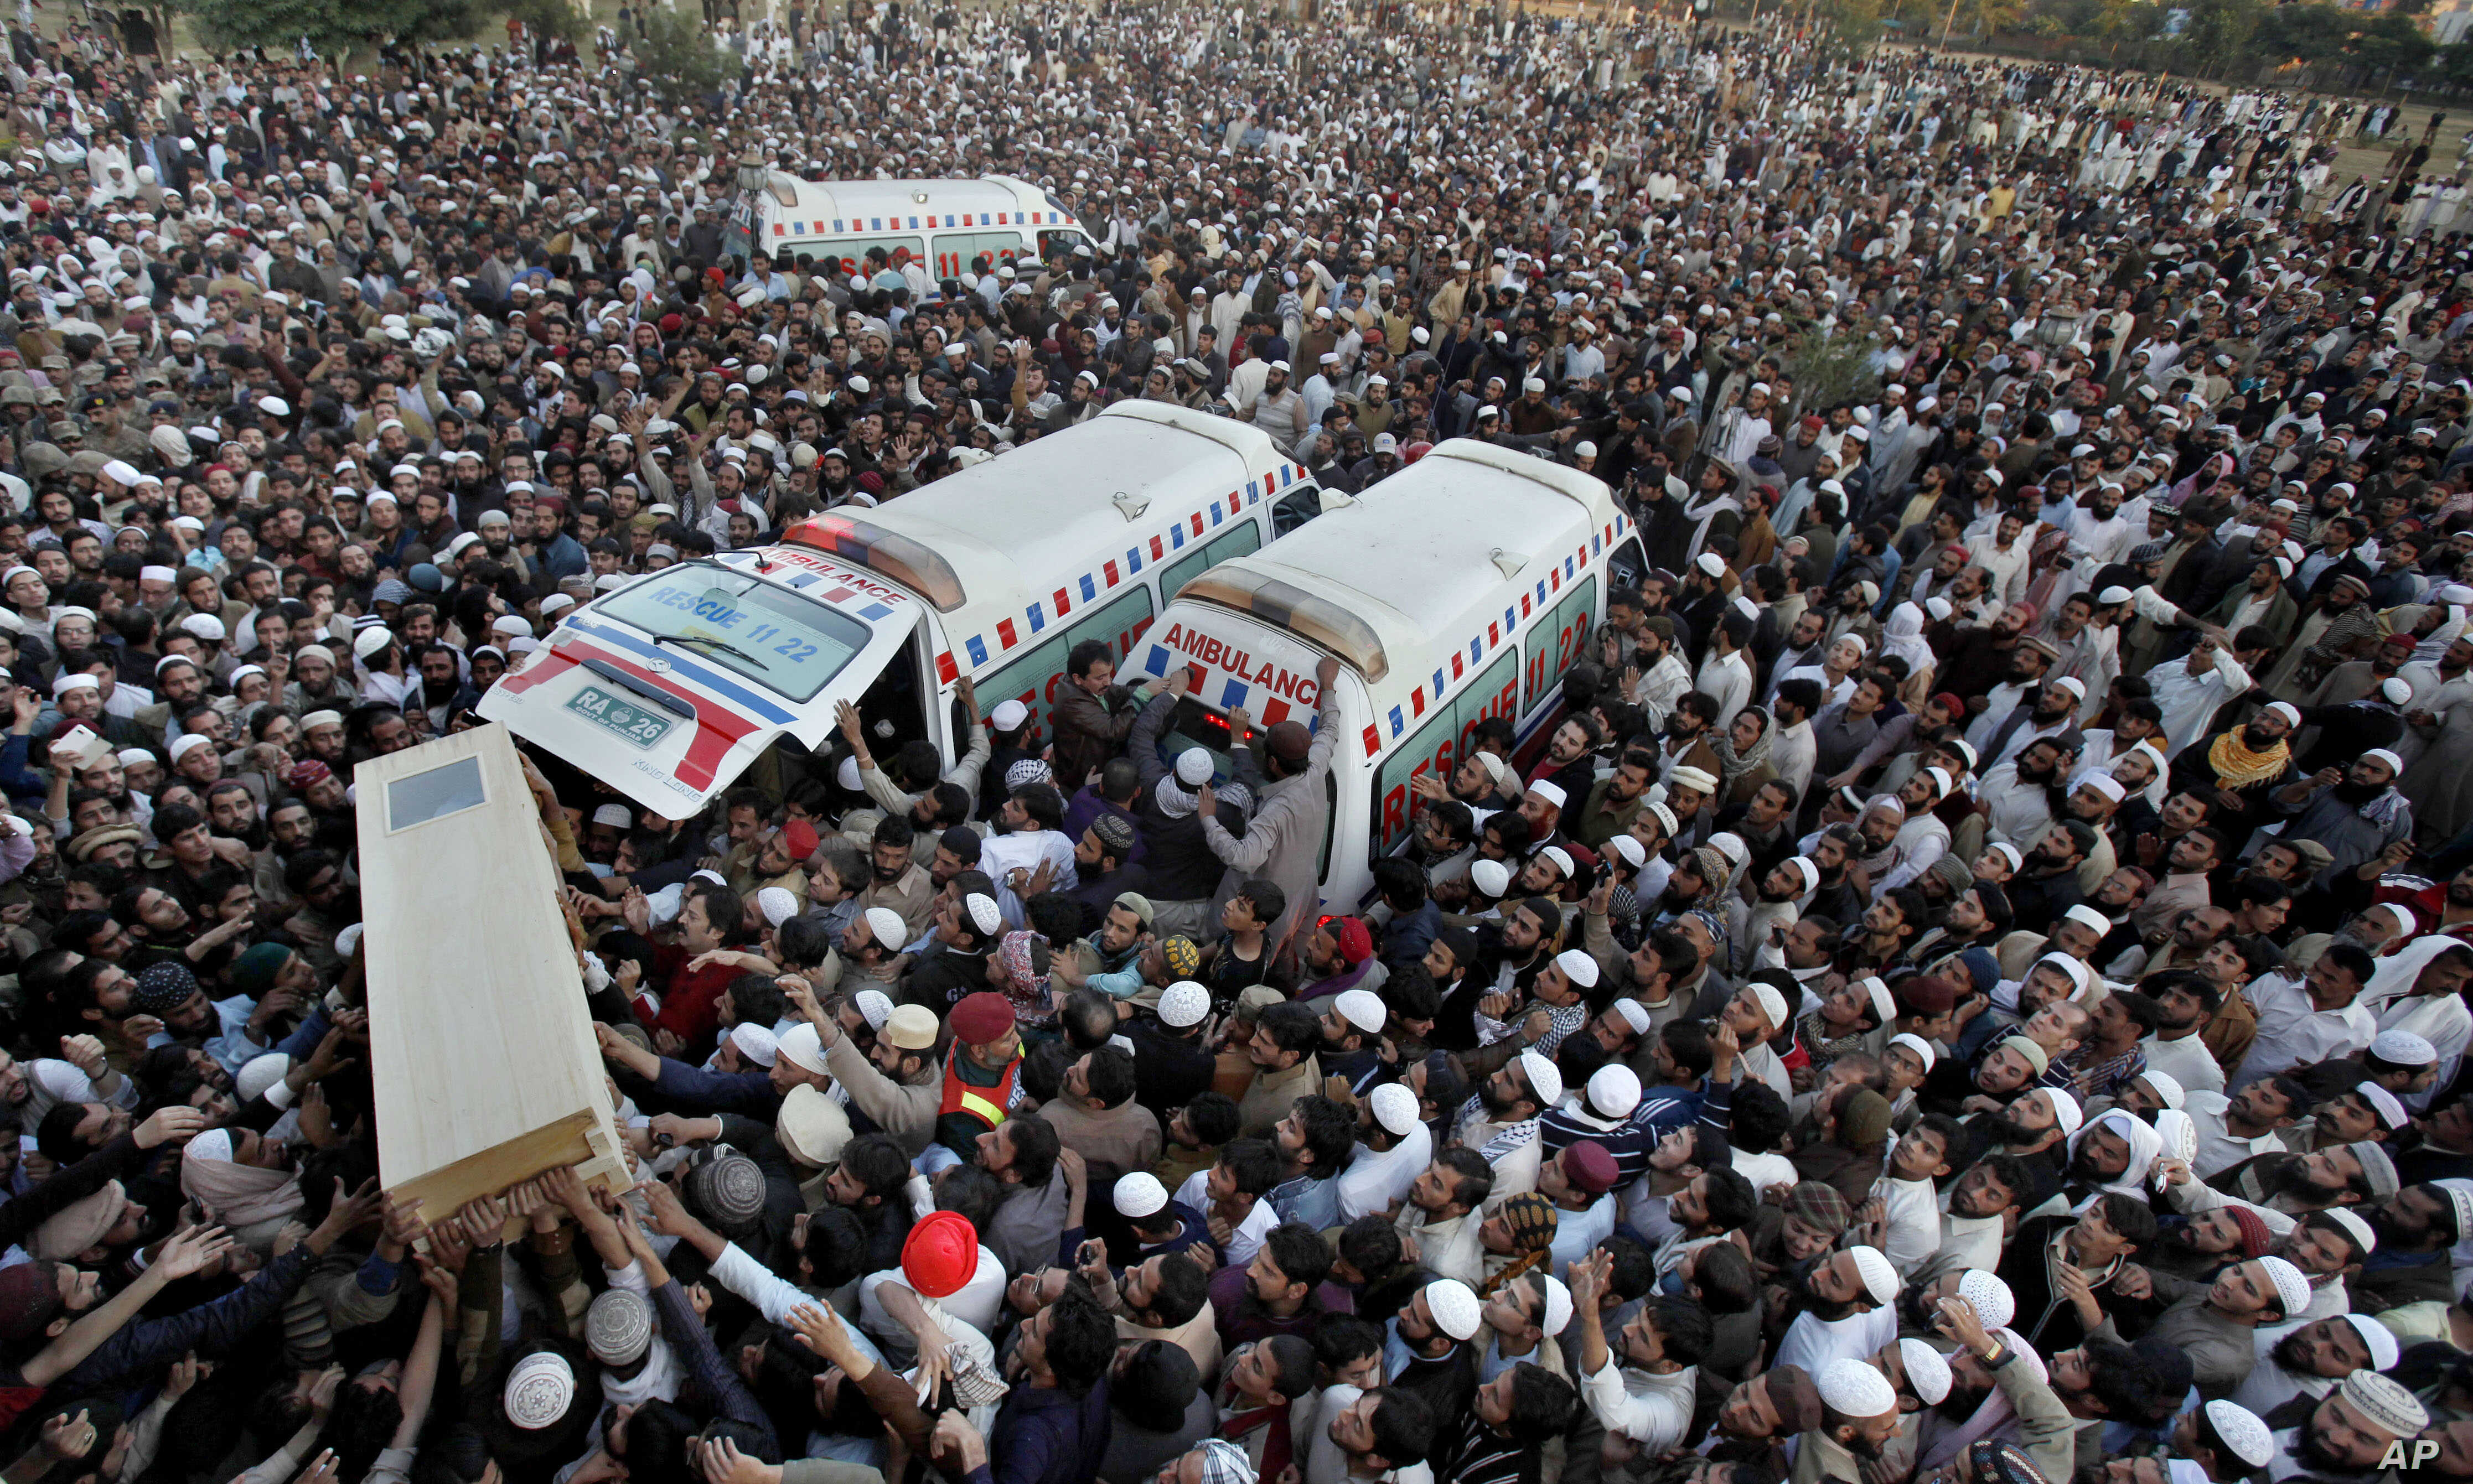 Pakistani Sunni Muslims carry the casket of a victim of Friday's sectarian clashes during funeral prayers in Rawalpindi, Pakistan,  Nov. 17, 2013.